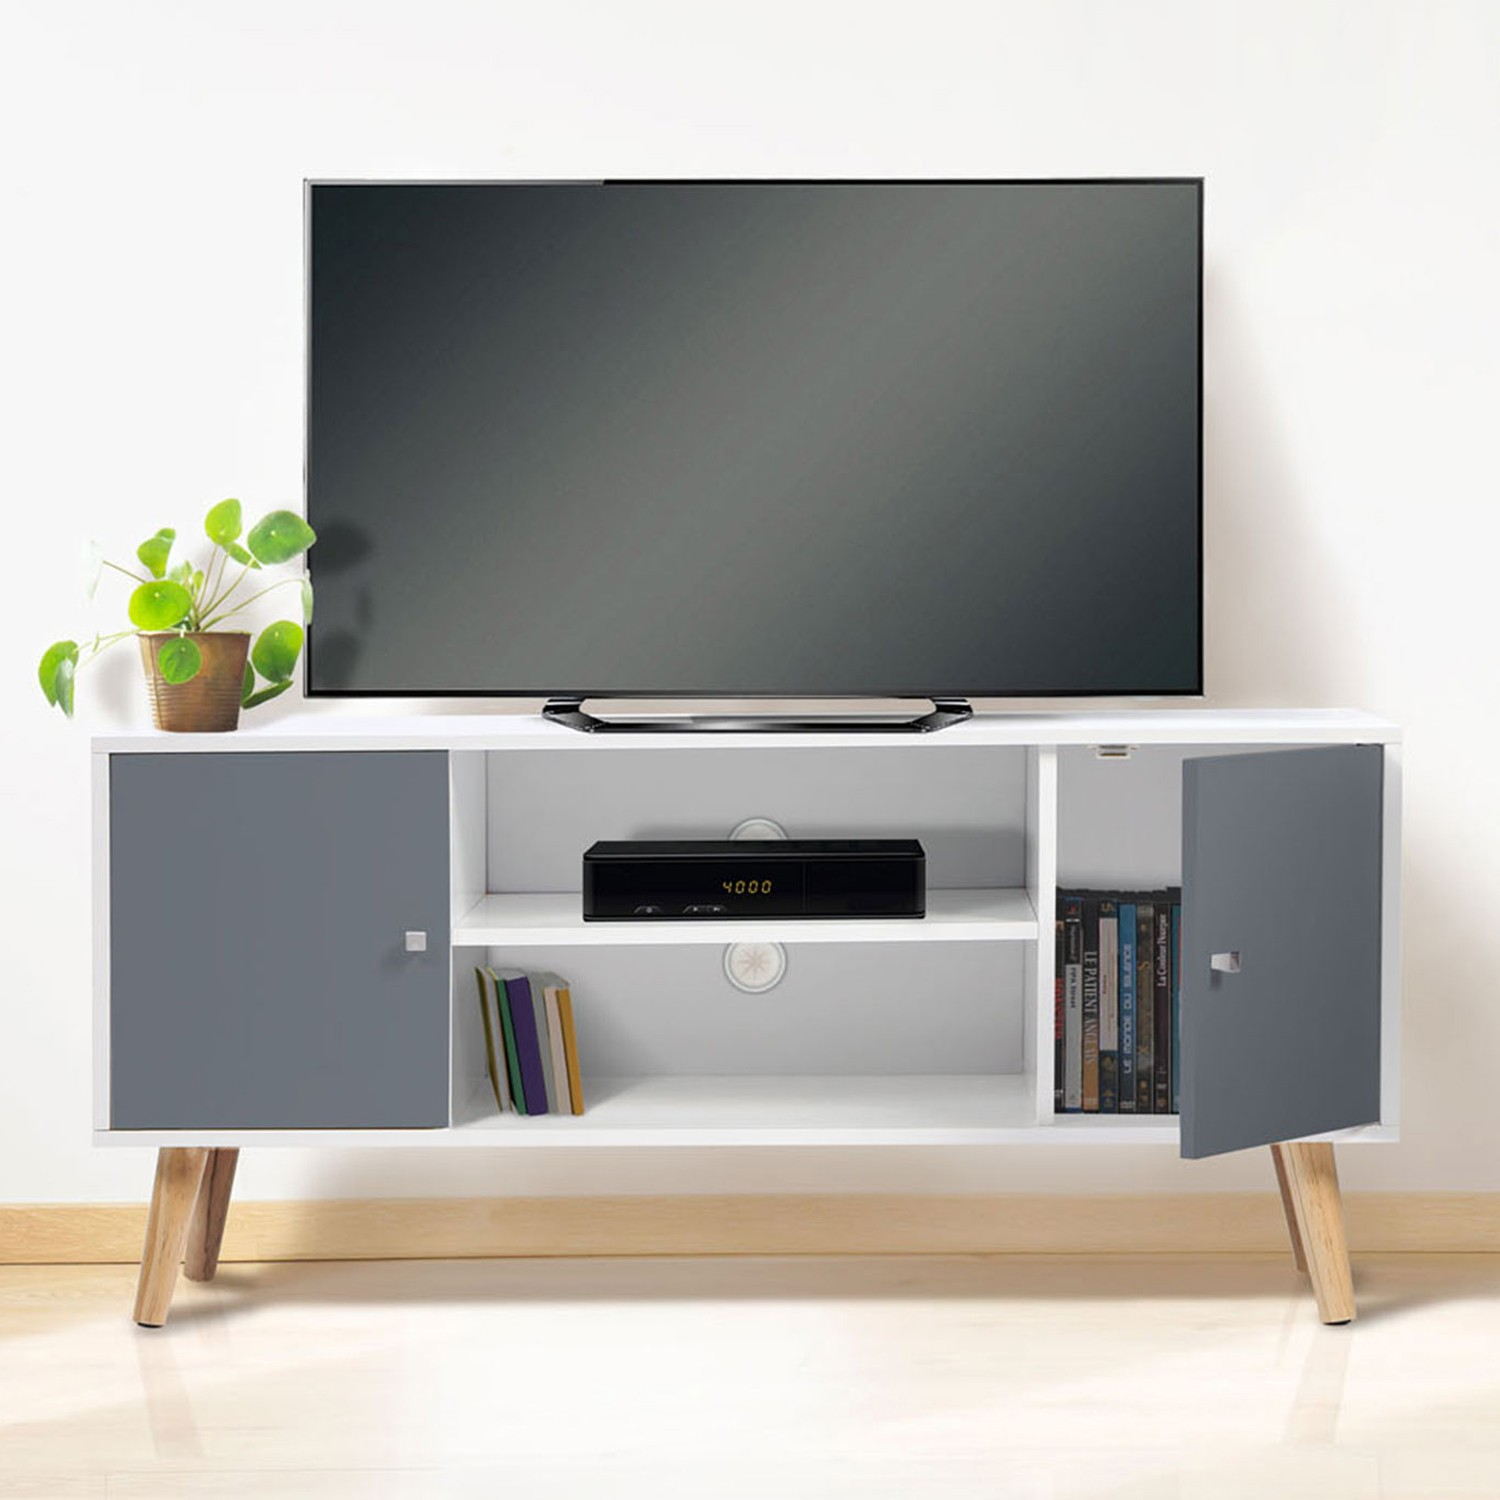 meuble tv scandinave pas cher en bois gris et blanc id market. Black Bedroom Furniture Sets. Home Design Ideas